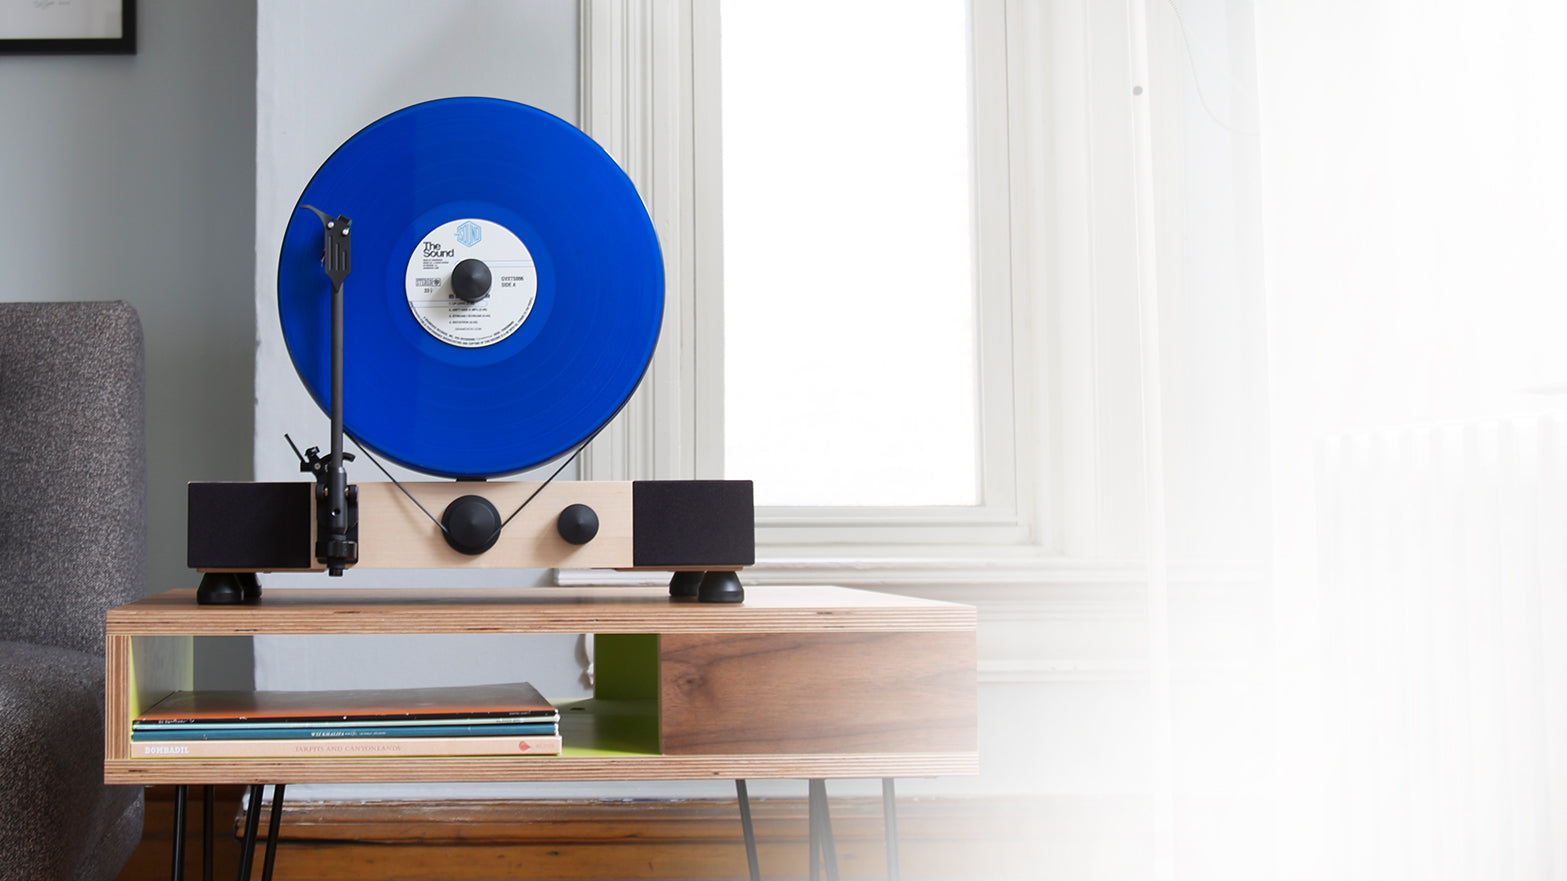 Floating Record Vertical Turntable – Vertical Record Player with Built-in Speakers | Header – Maple-Wood, Black Vinyl